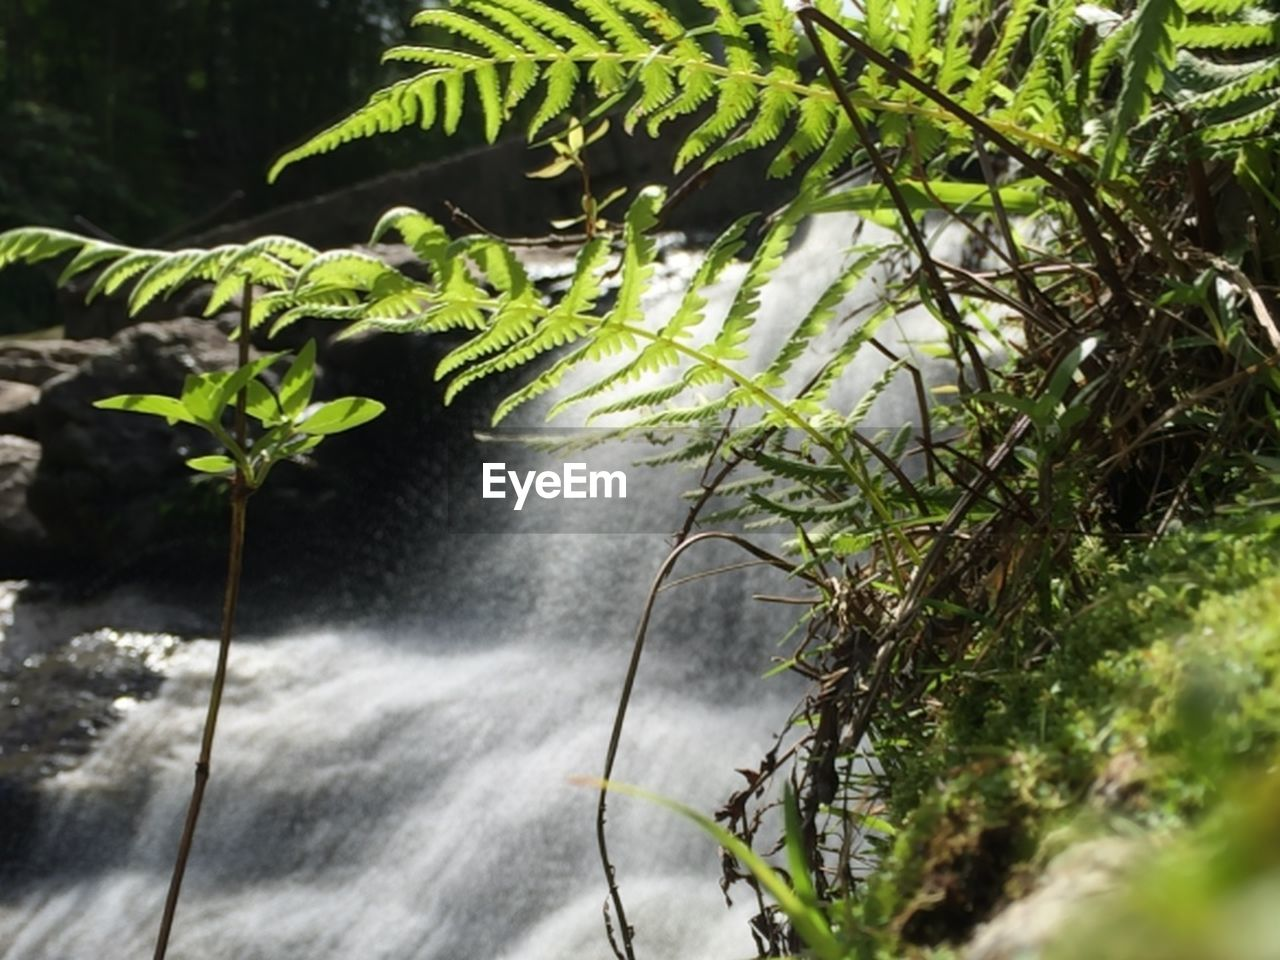 nature, growth, leaf, green color, plant, beauty in nature, no people, day, outdoors, fern, motion, water, tree, freshness